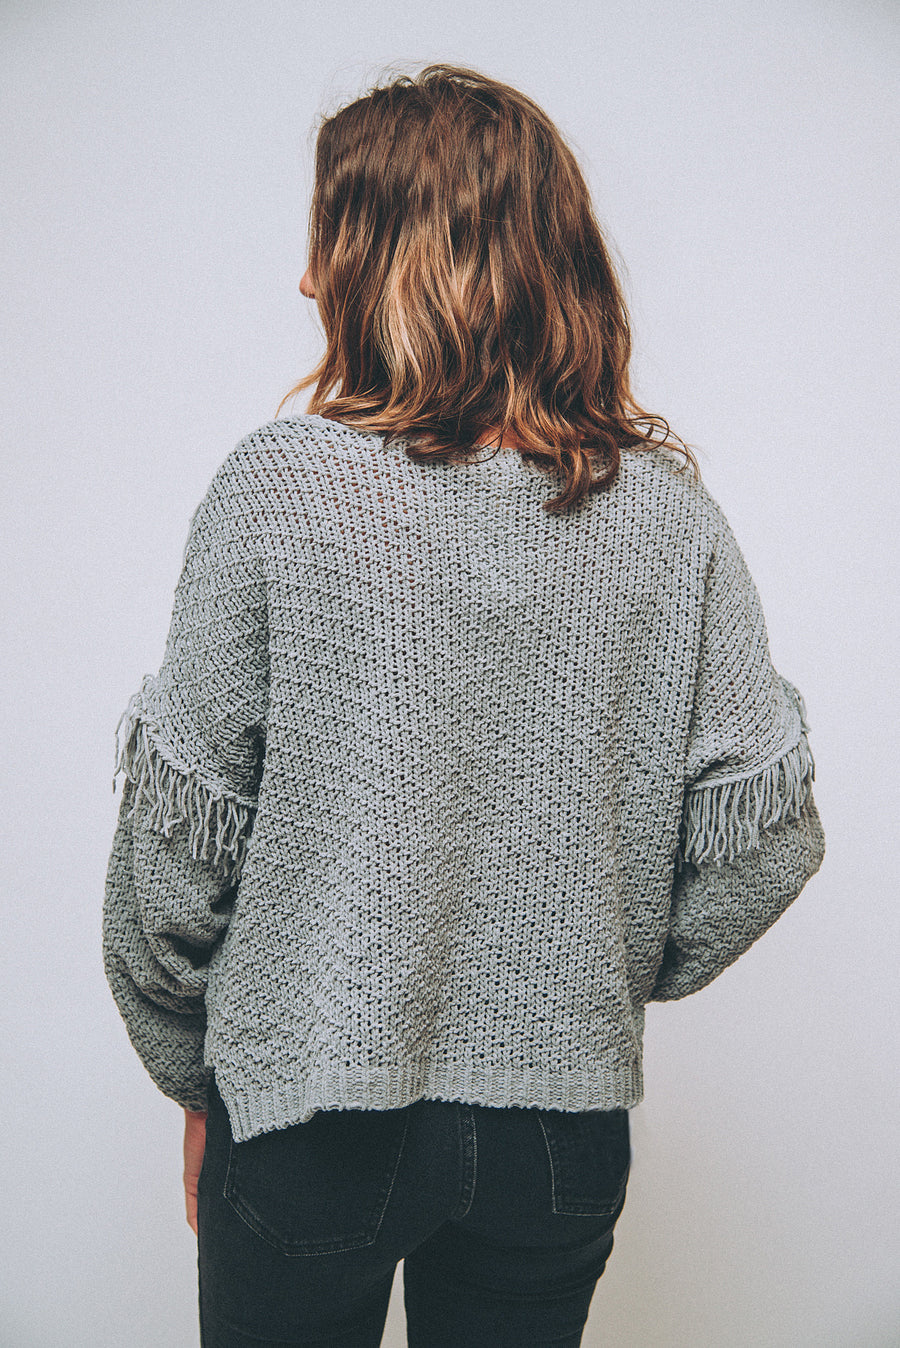 SALTWATER LUXE: HALF MOON SWEATER